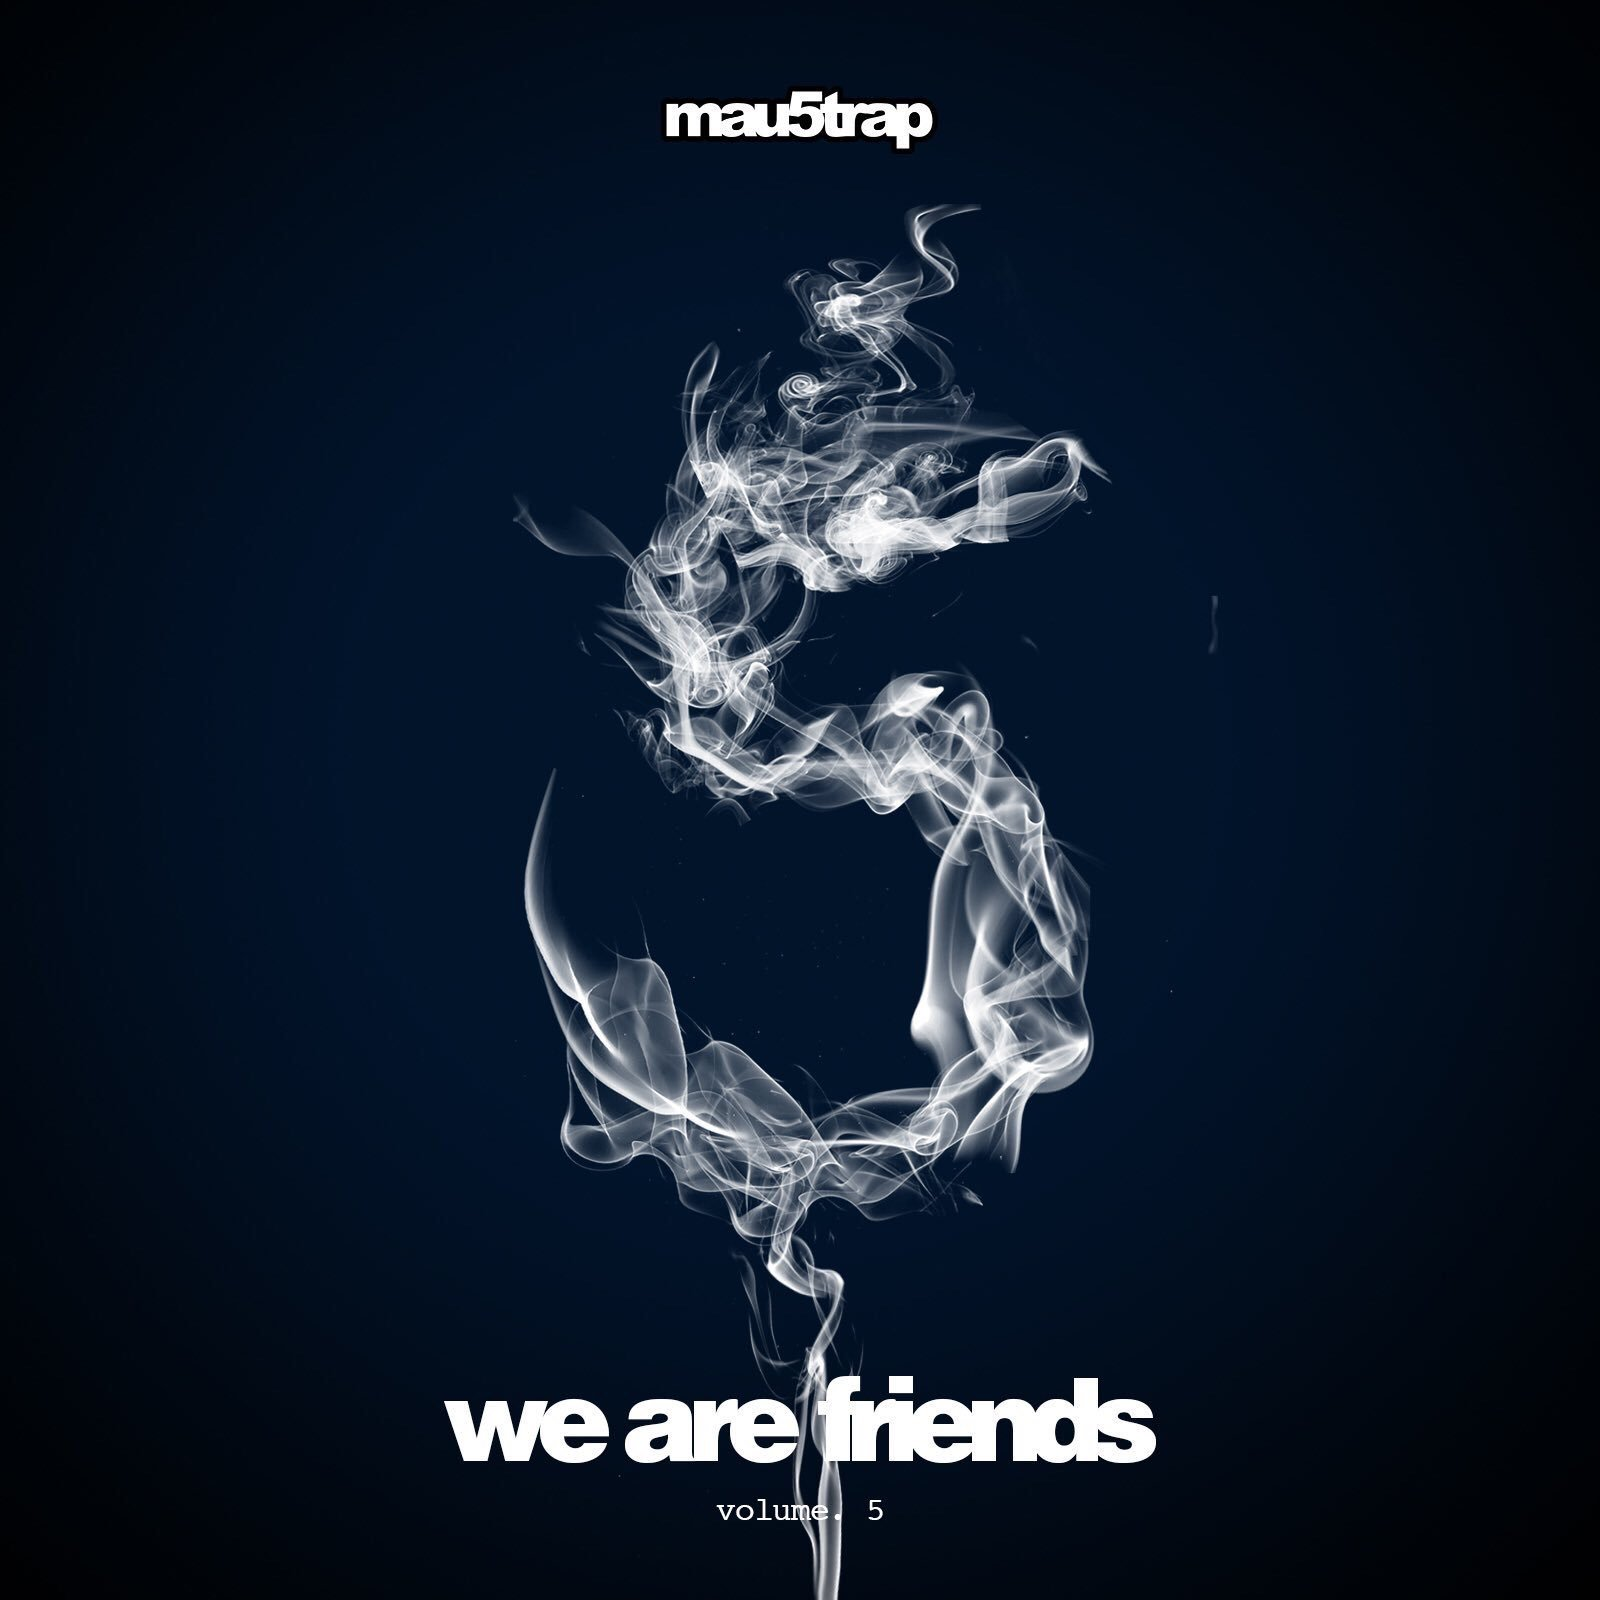 We are friends volume 4